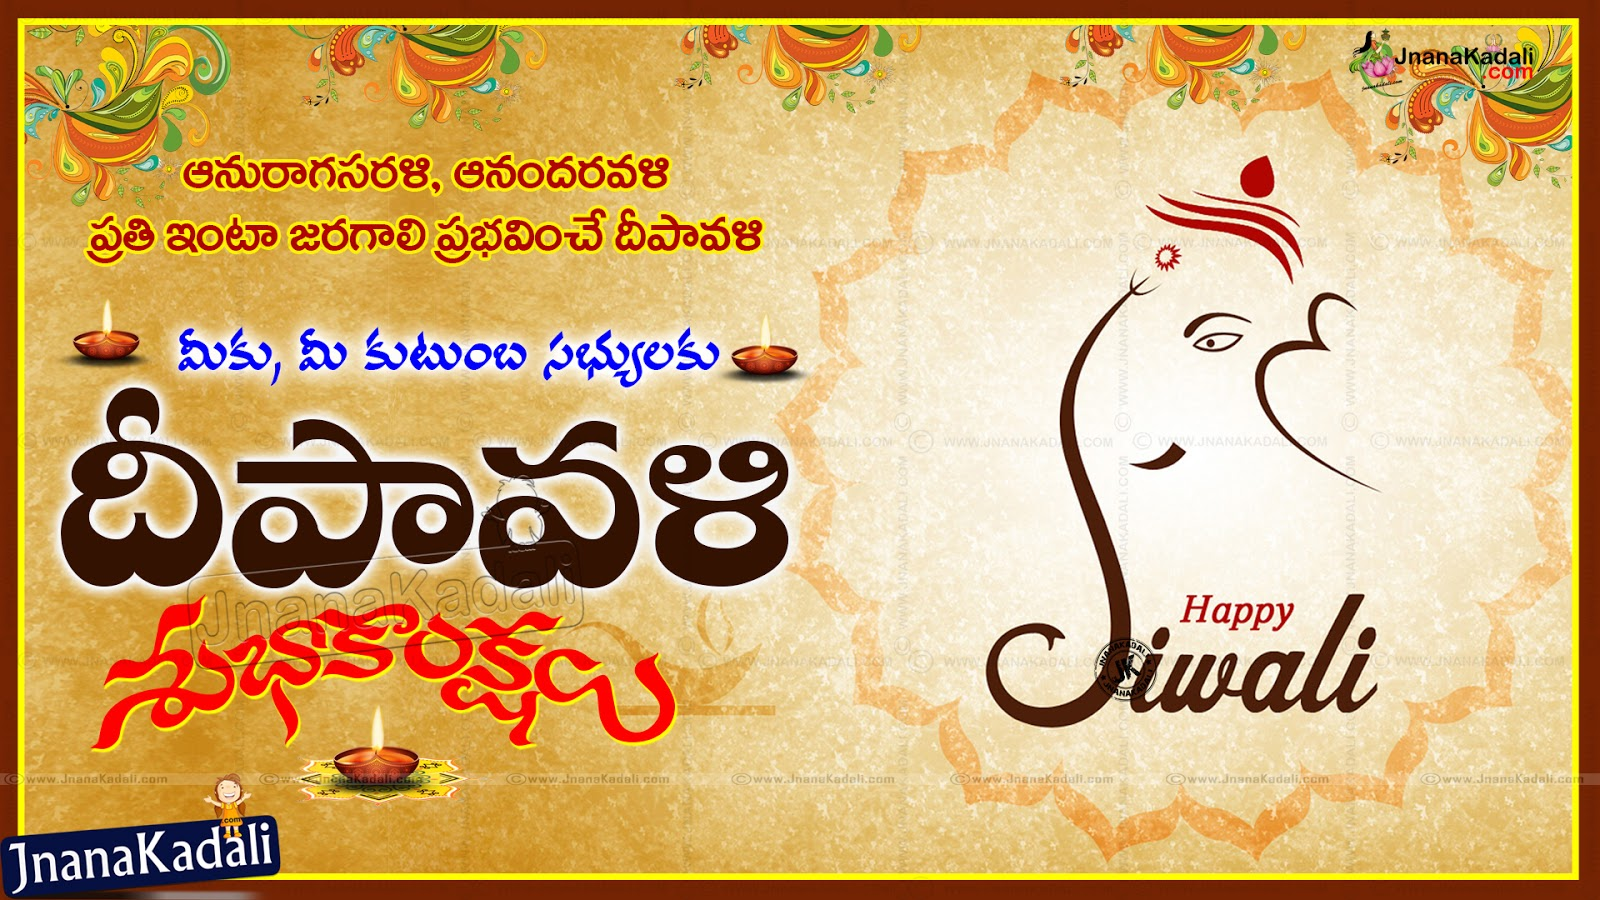 Special Diwali Greetings In Telugu Language With Facebook Cover